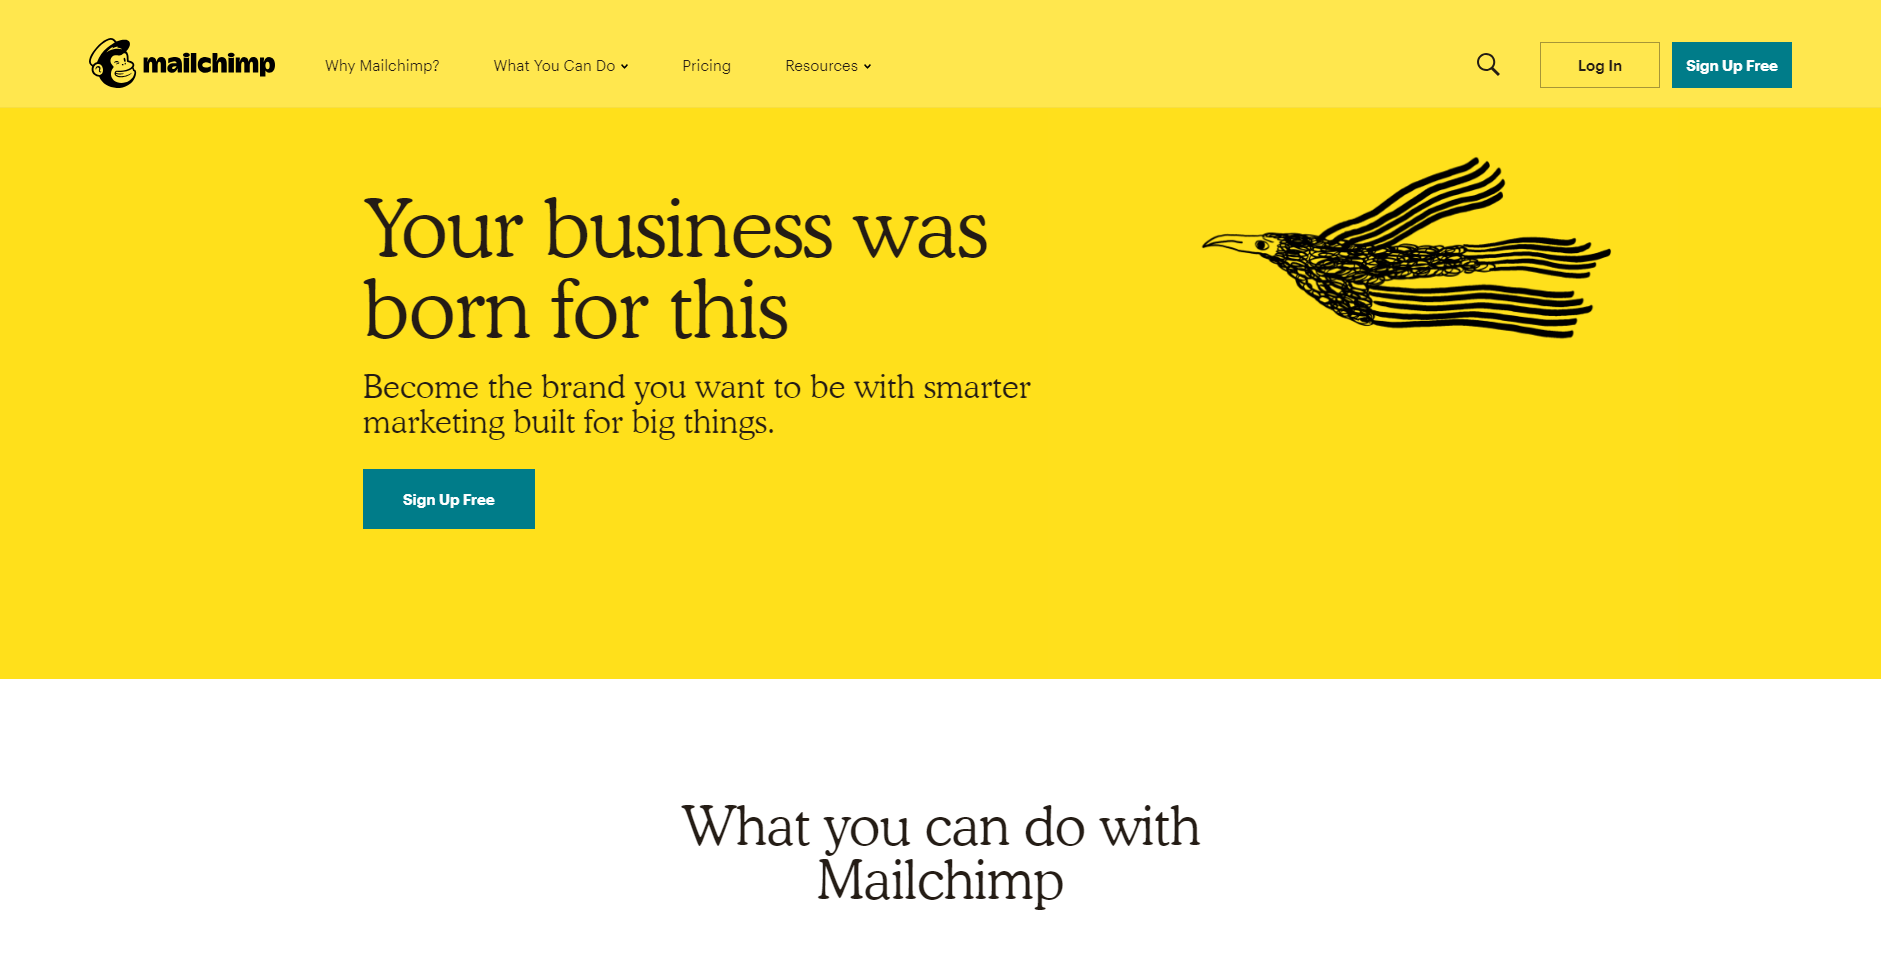 The homepage of Mailchimp